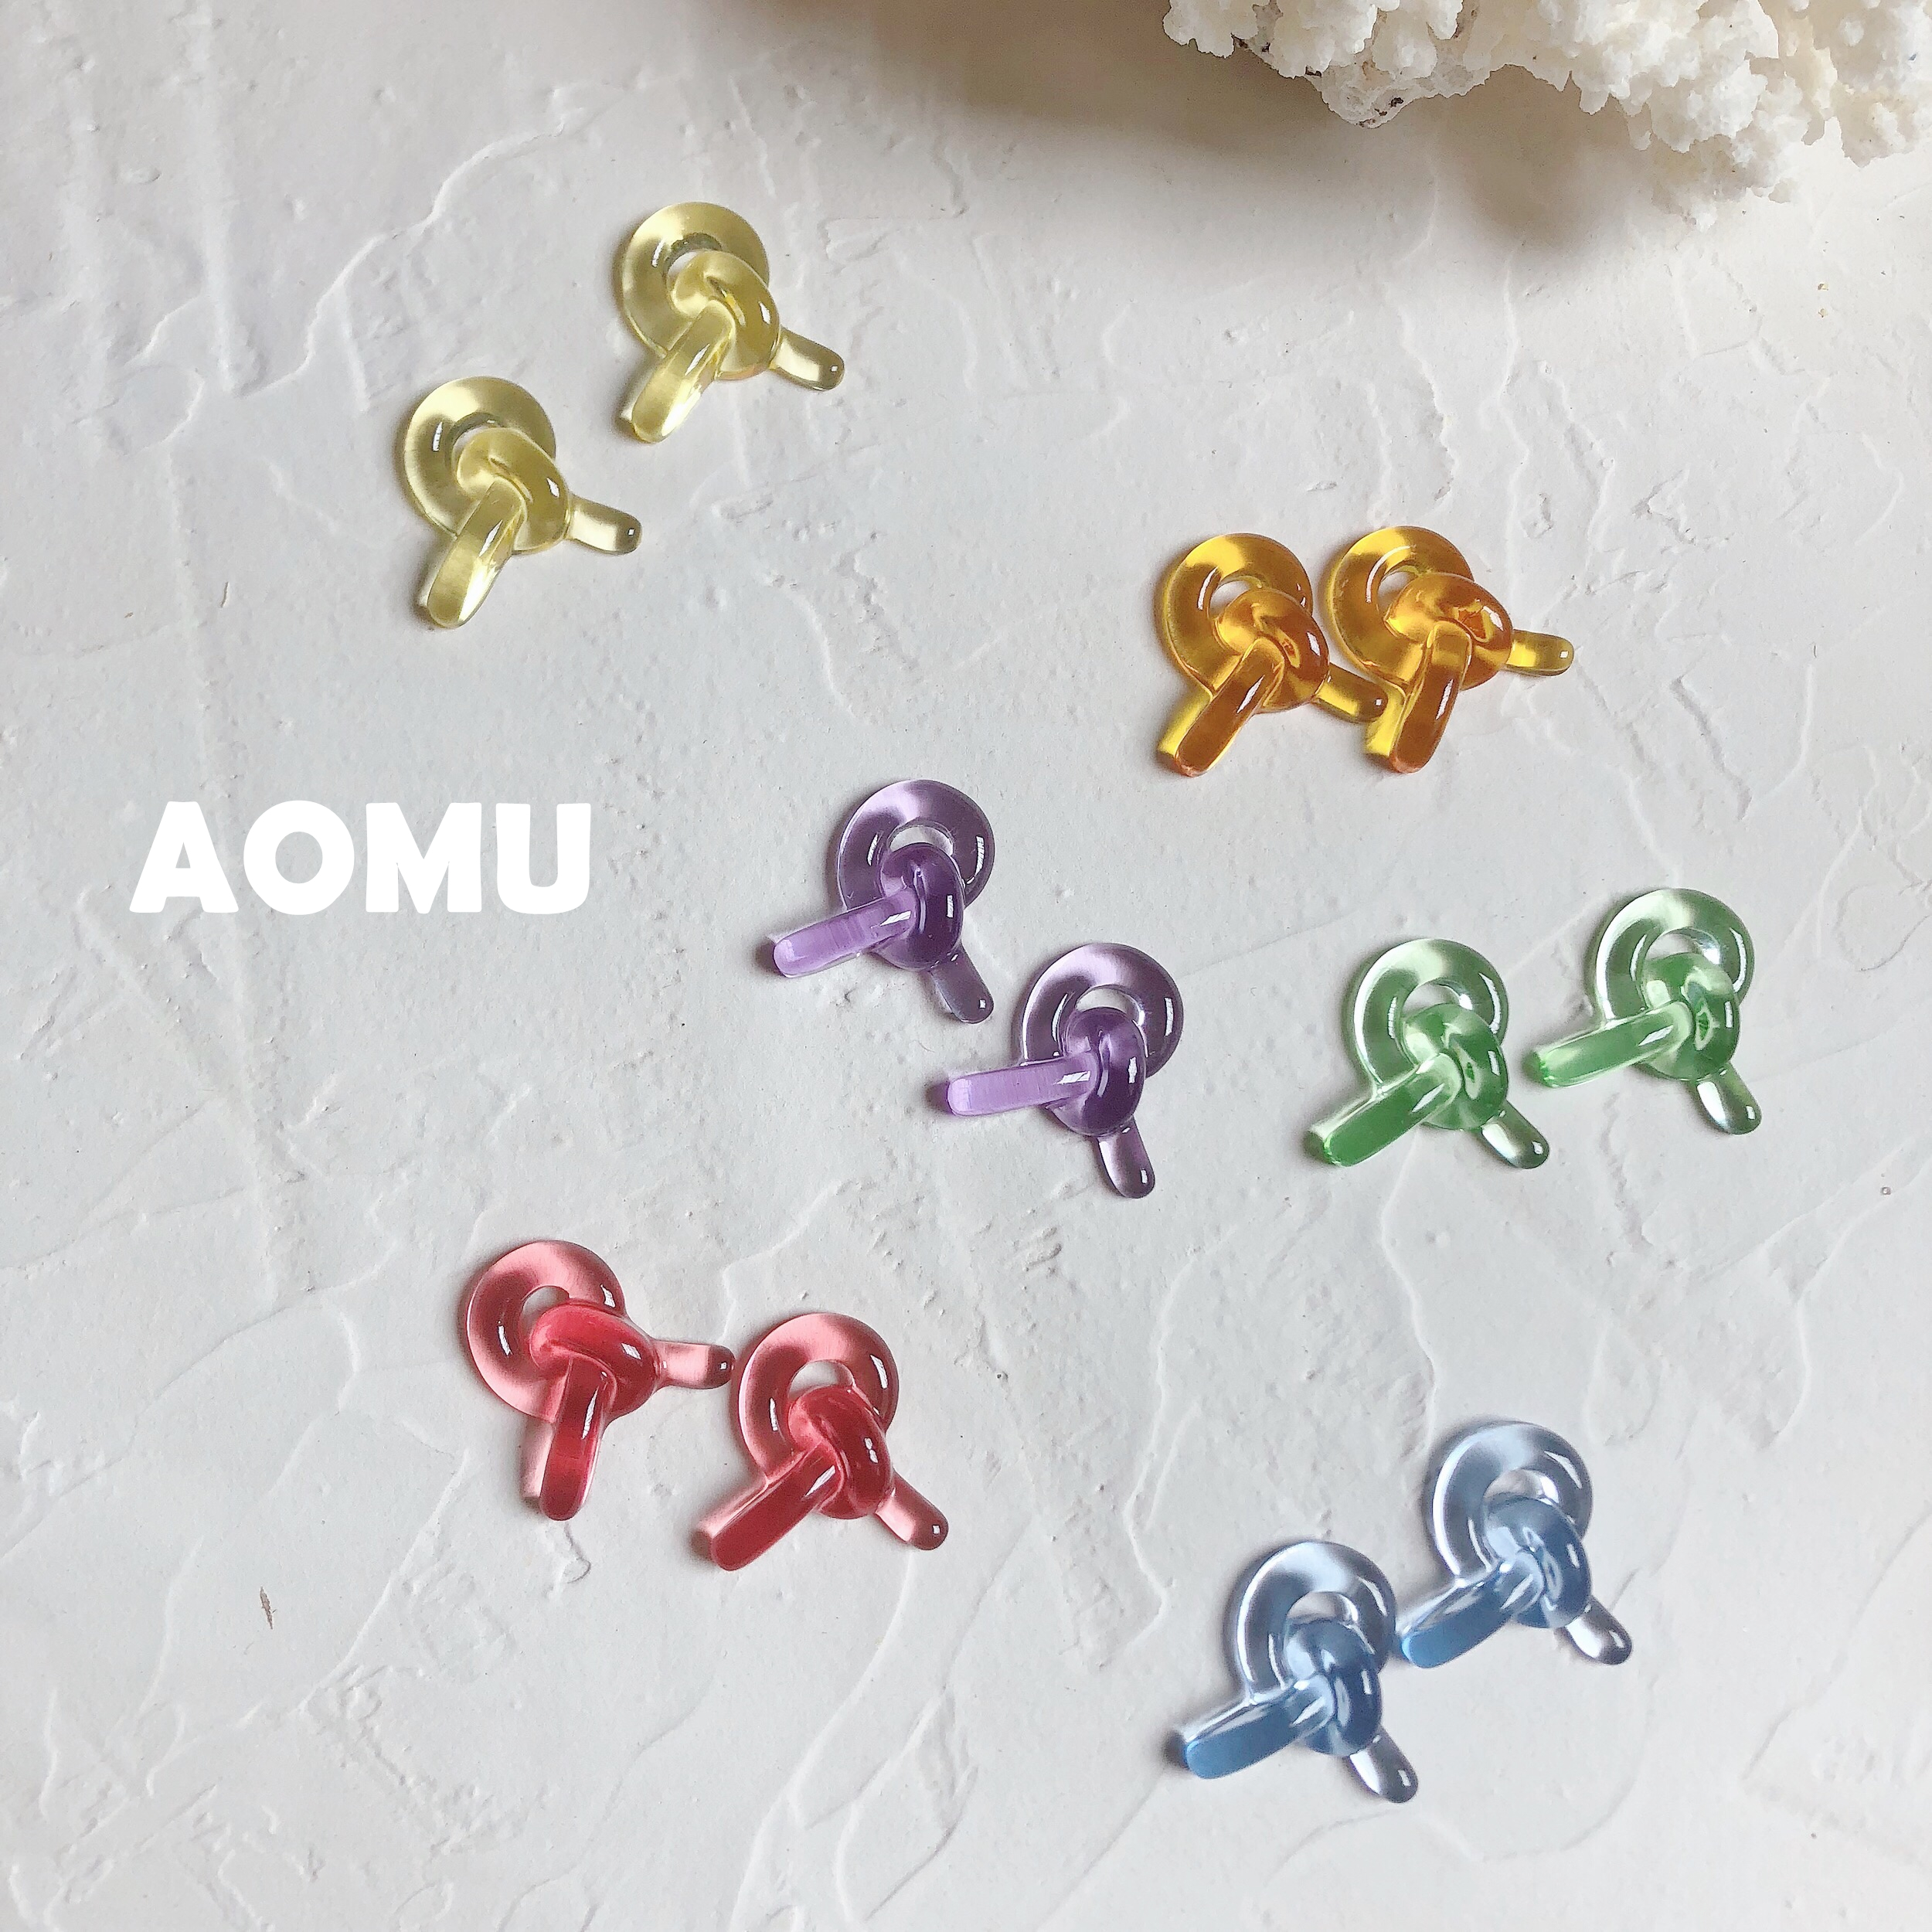 AOMU 1Pair 2020 New Colorful Transparent Resin Knotted Earrings For Women Spring Cute Korea Earring Party Jewelry Gifts